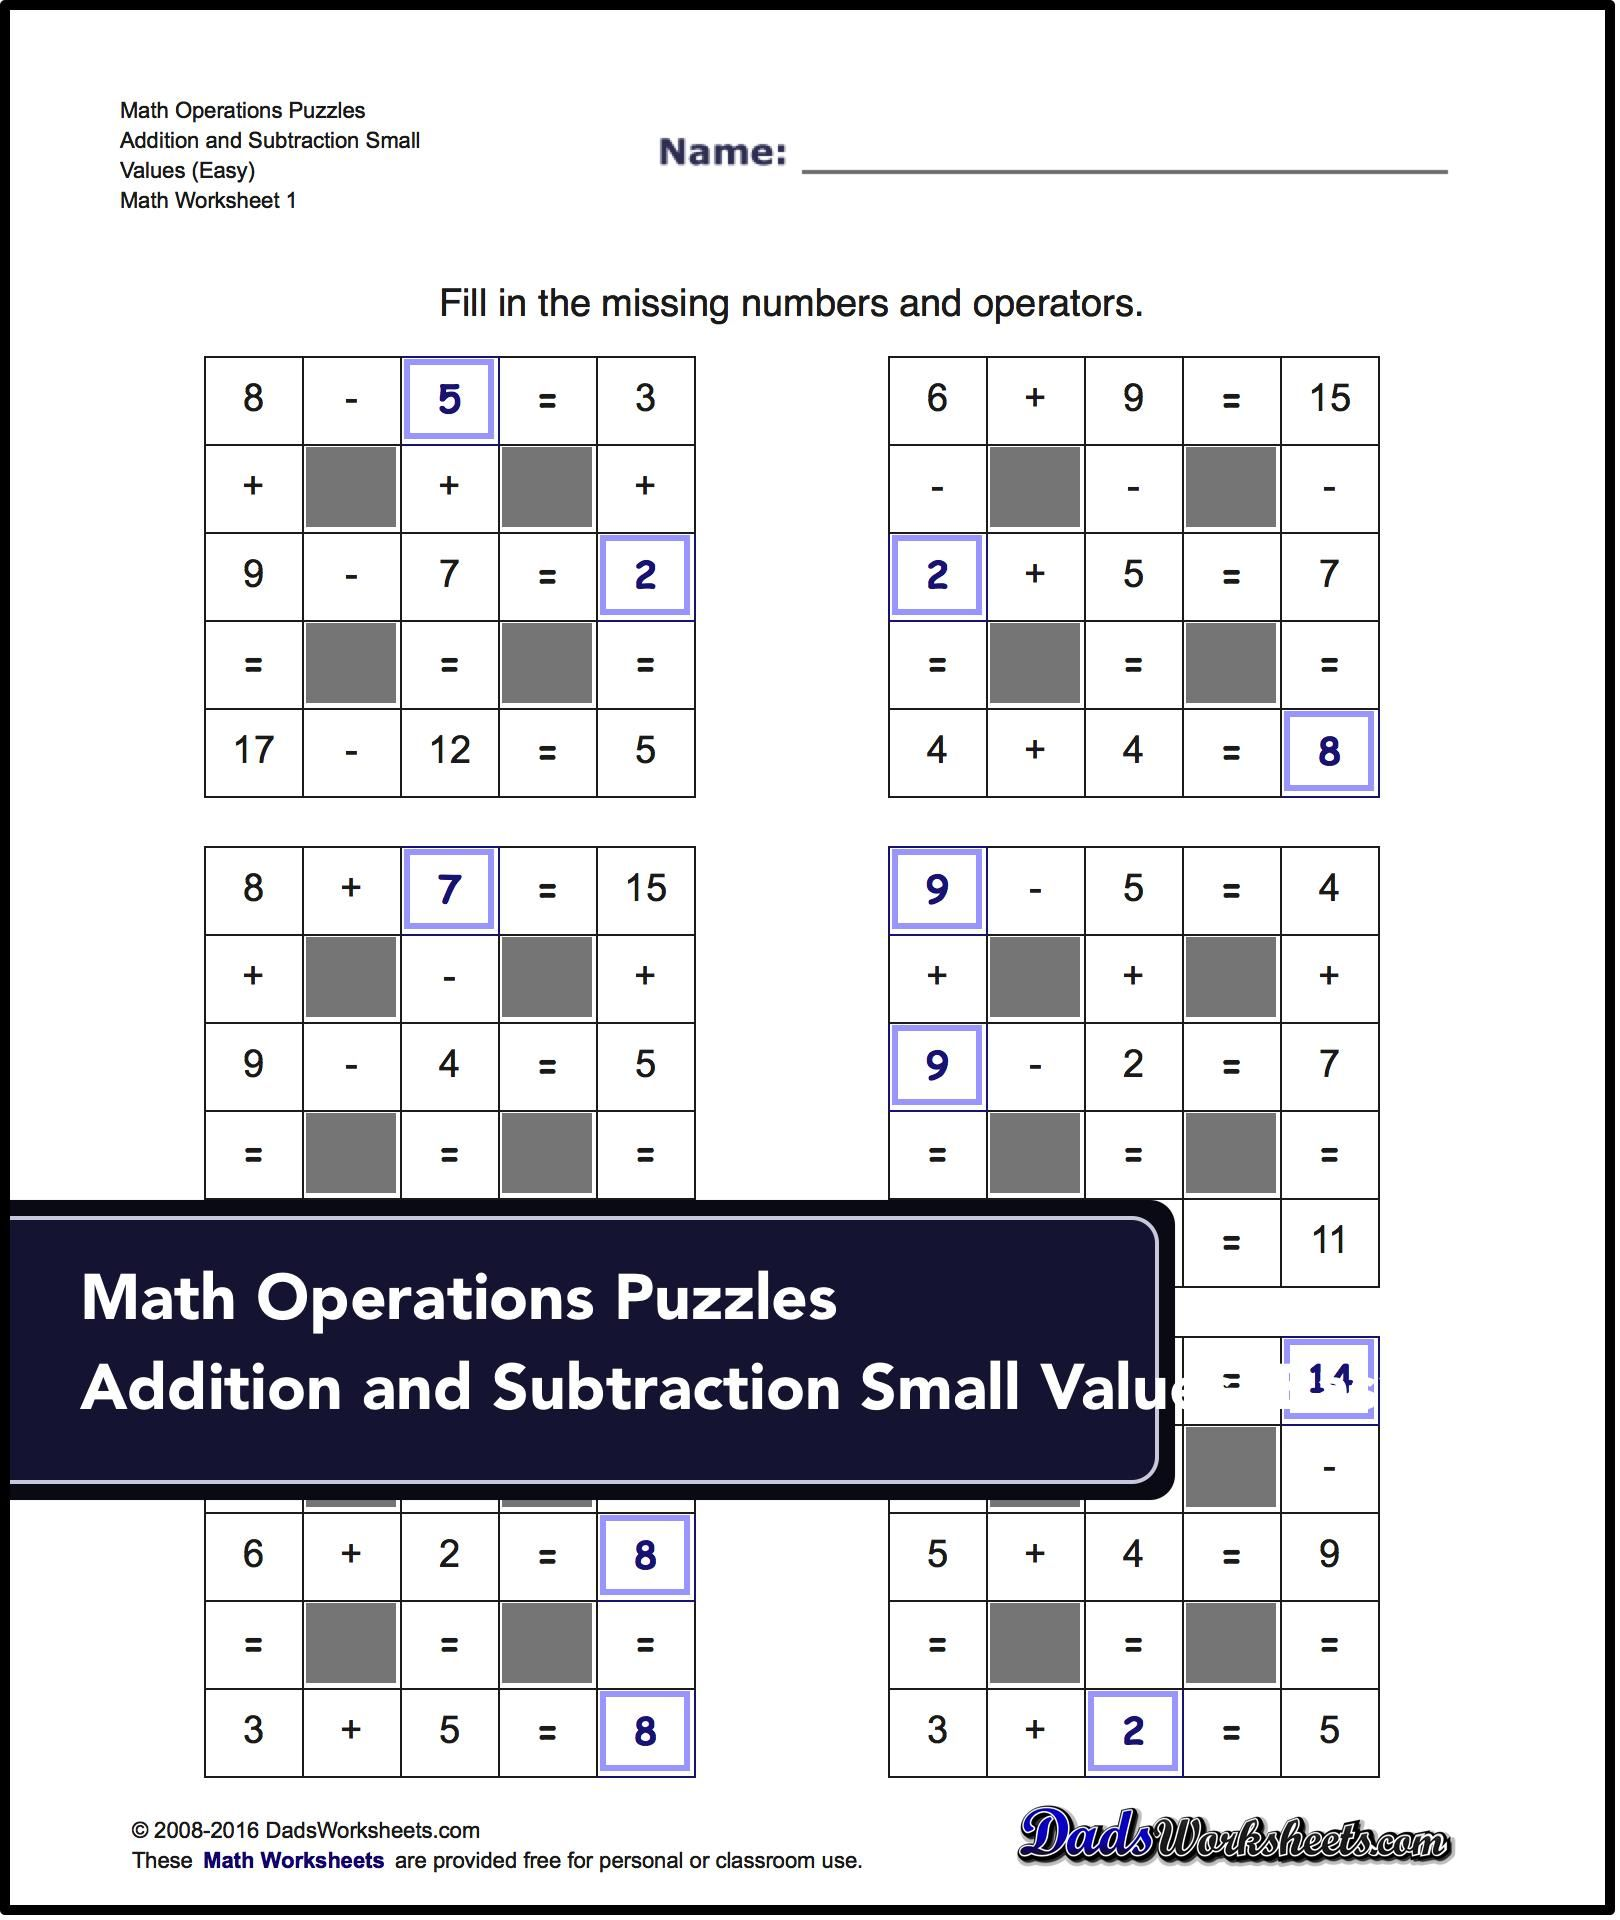 Number Grid Puzzles Addition And Subtraction With Missing Values Small